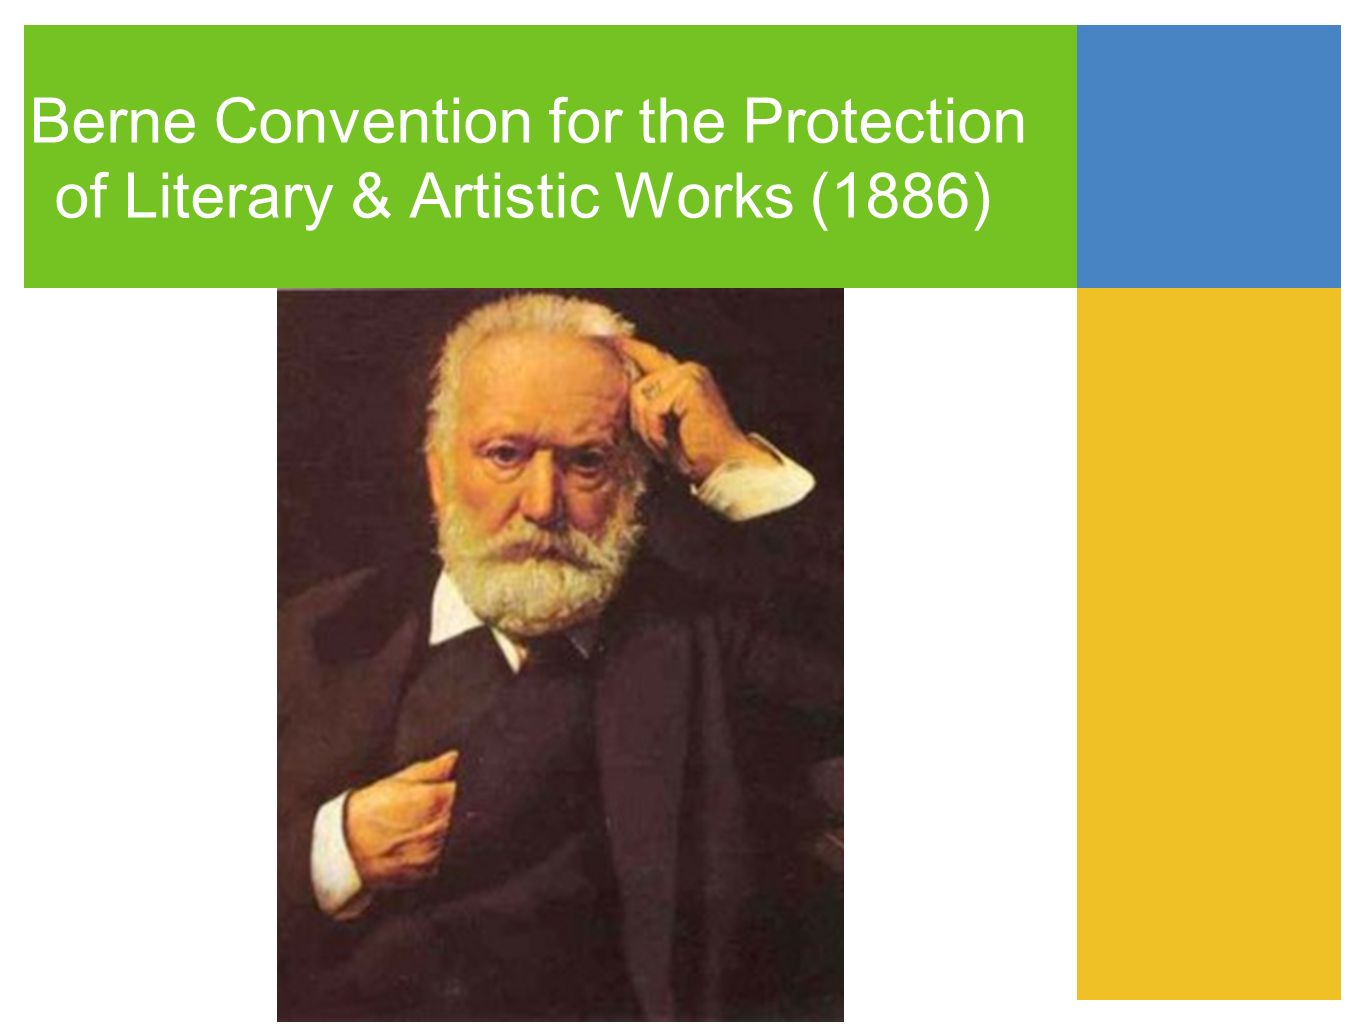 Berne Convention for the Protection of Literary & Artistic Works (1886)